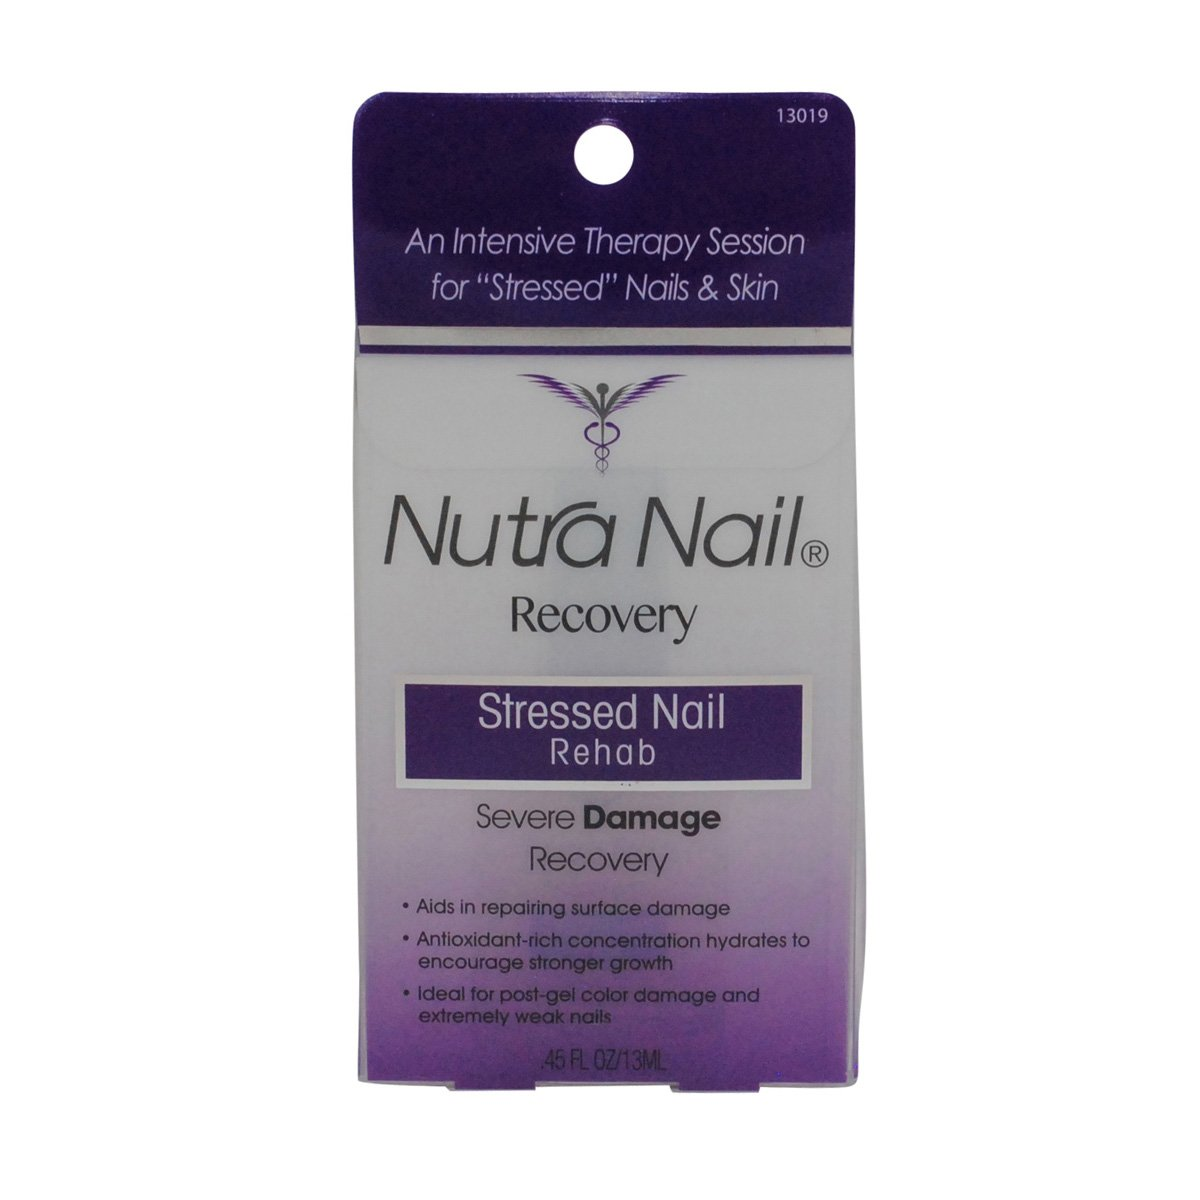 Nutra Nail ''Recovery'' Stressed Nail Rehab (Pack of 1)